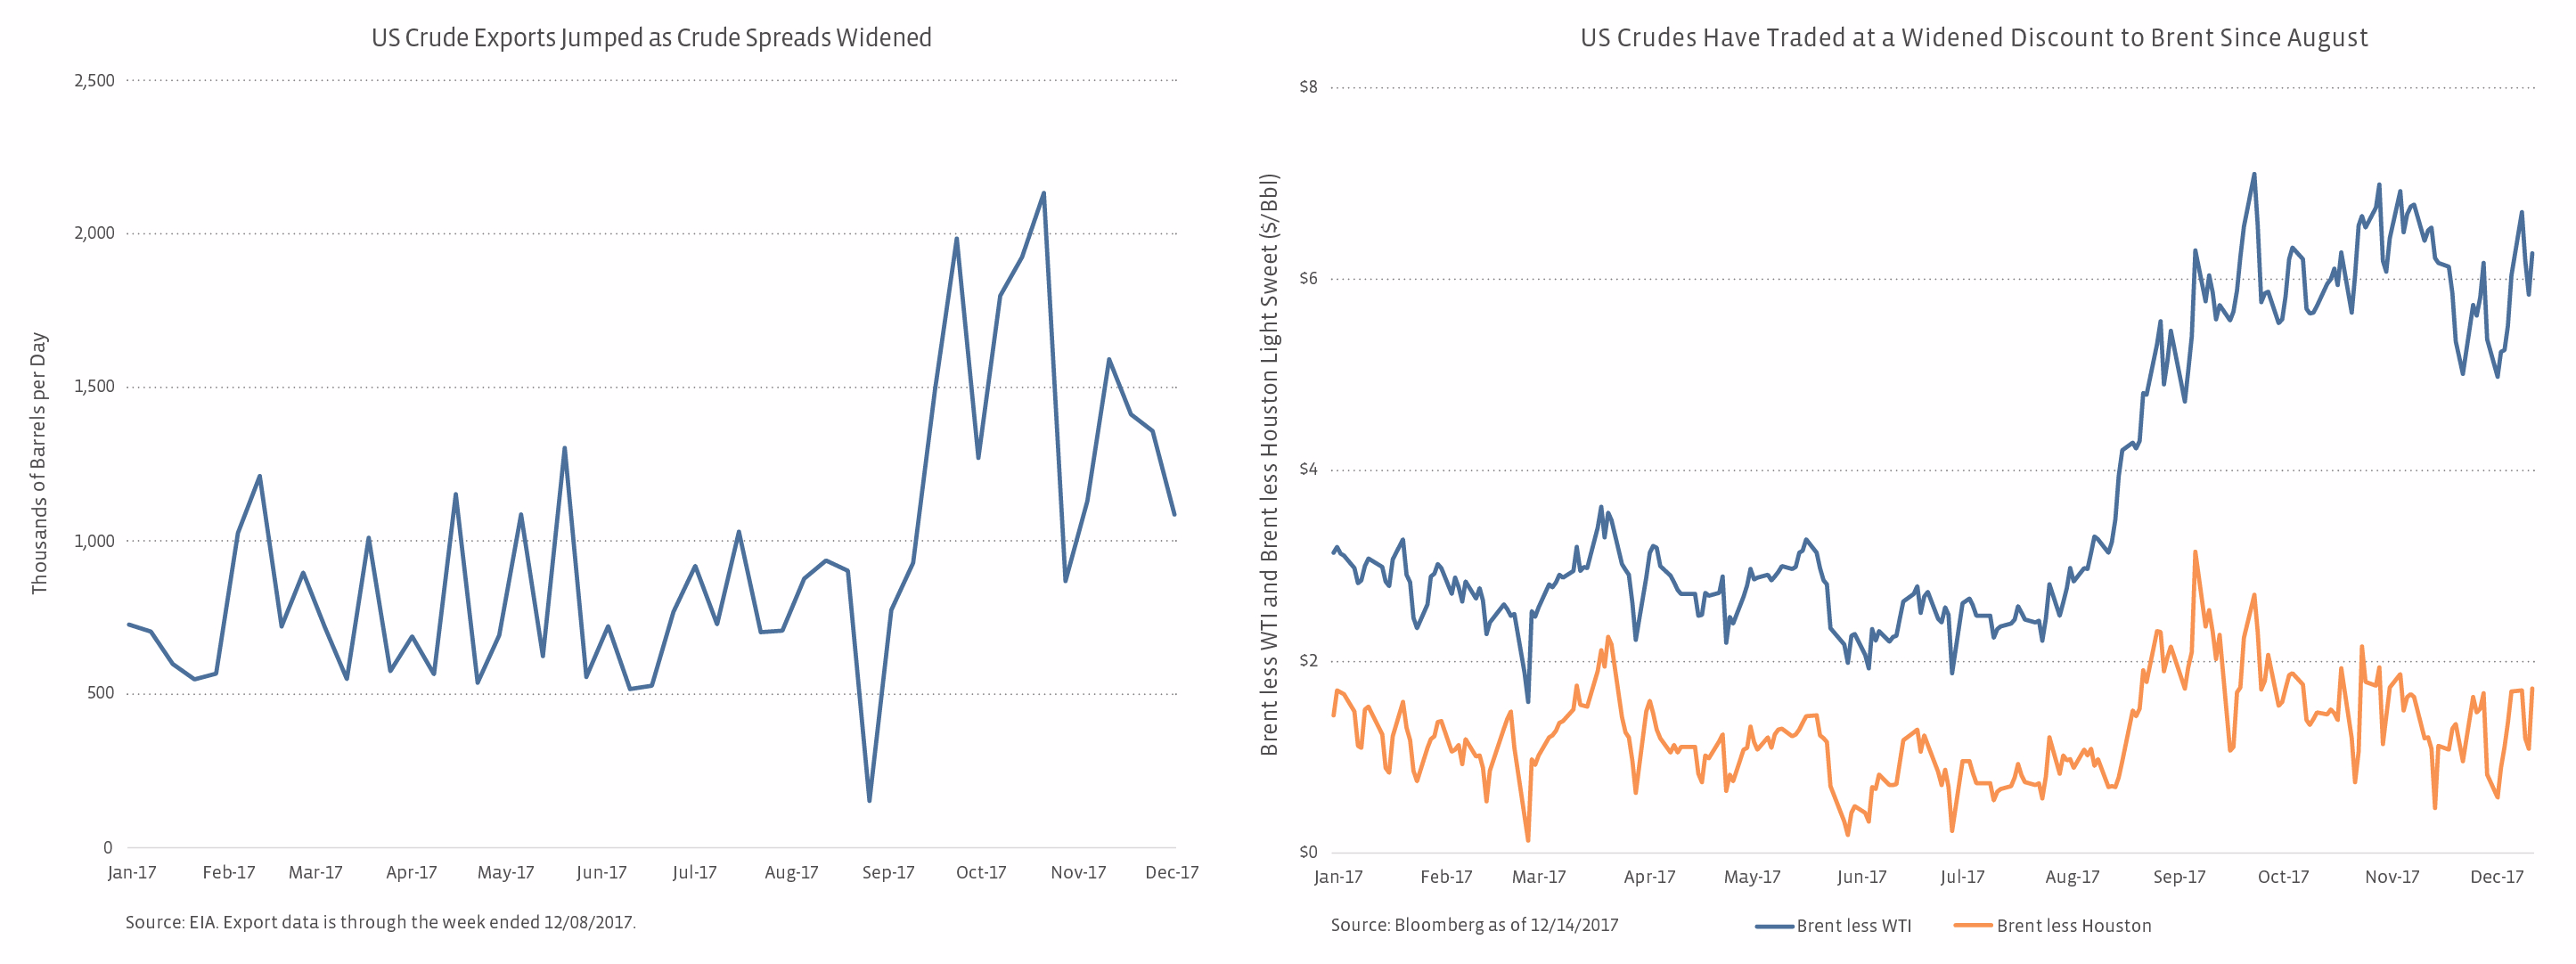 What Are Crude Spreads And Why Do They Matter To MLPs? | Seeking Alpha